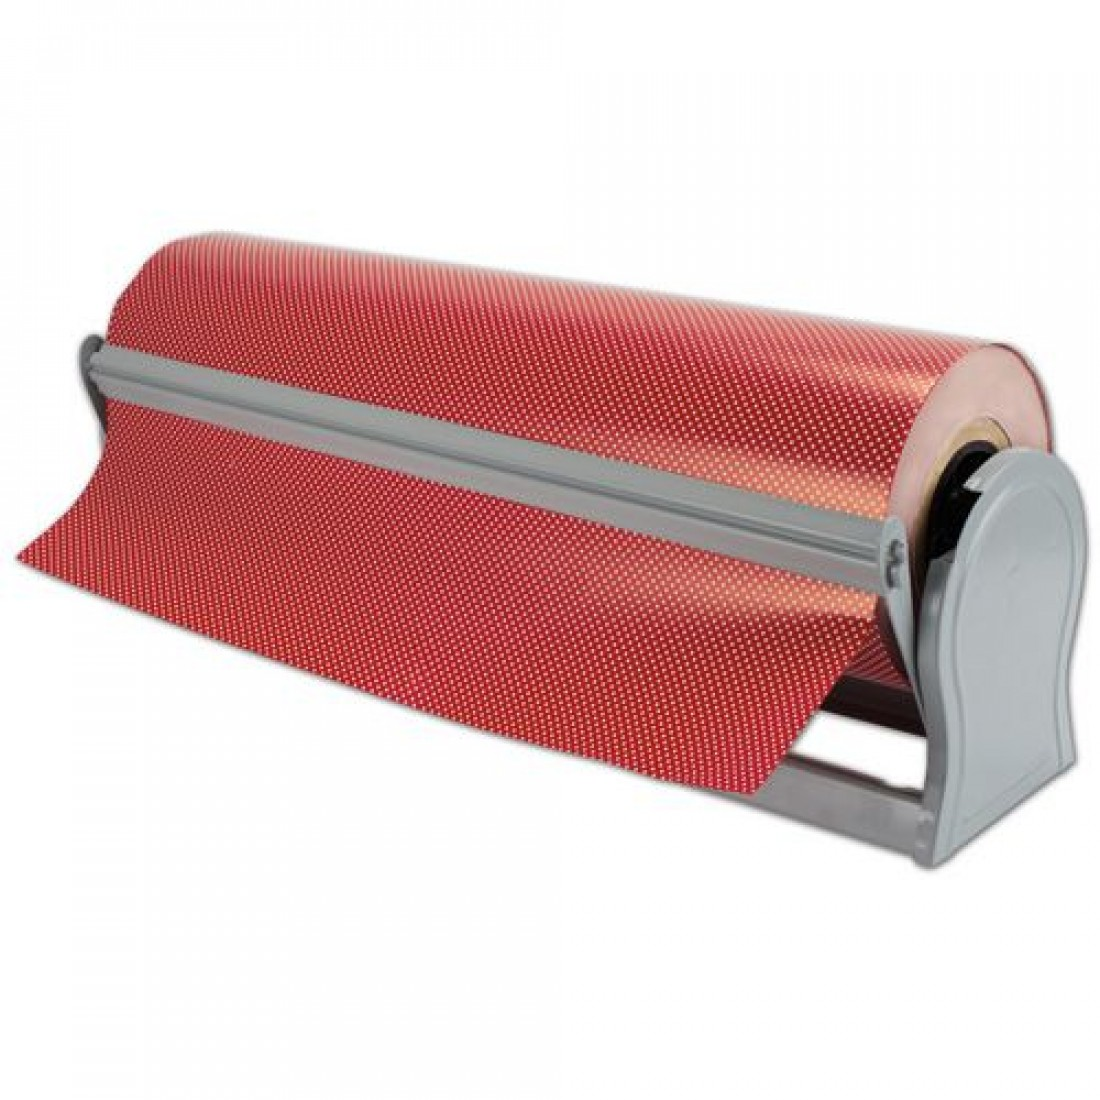 Wrapping Paper Dispenser